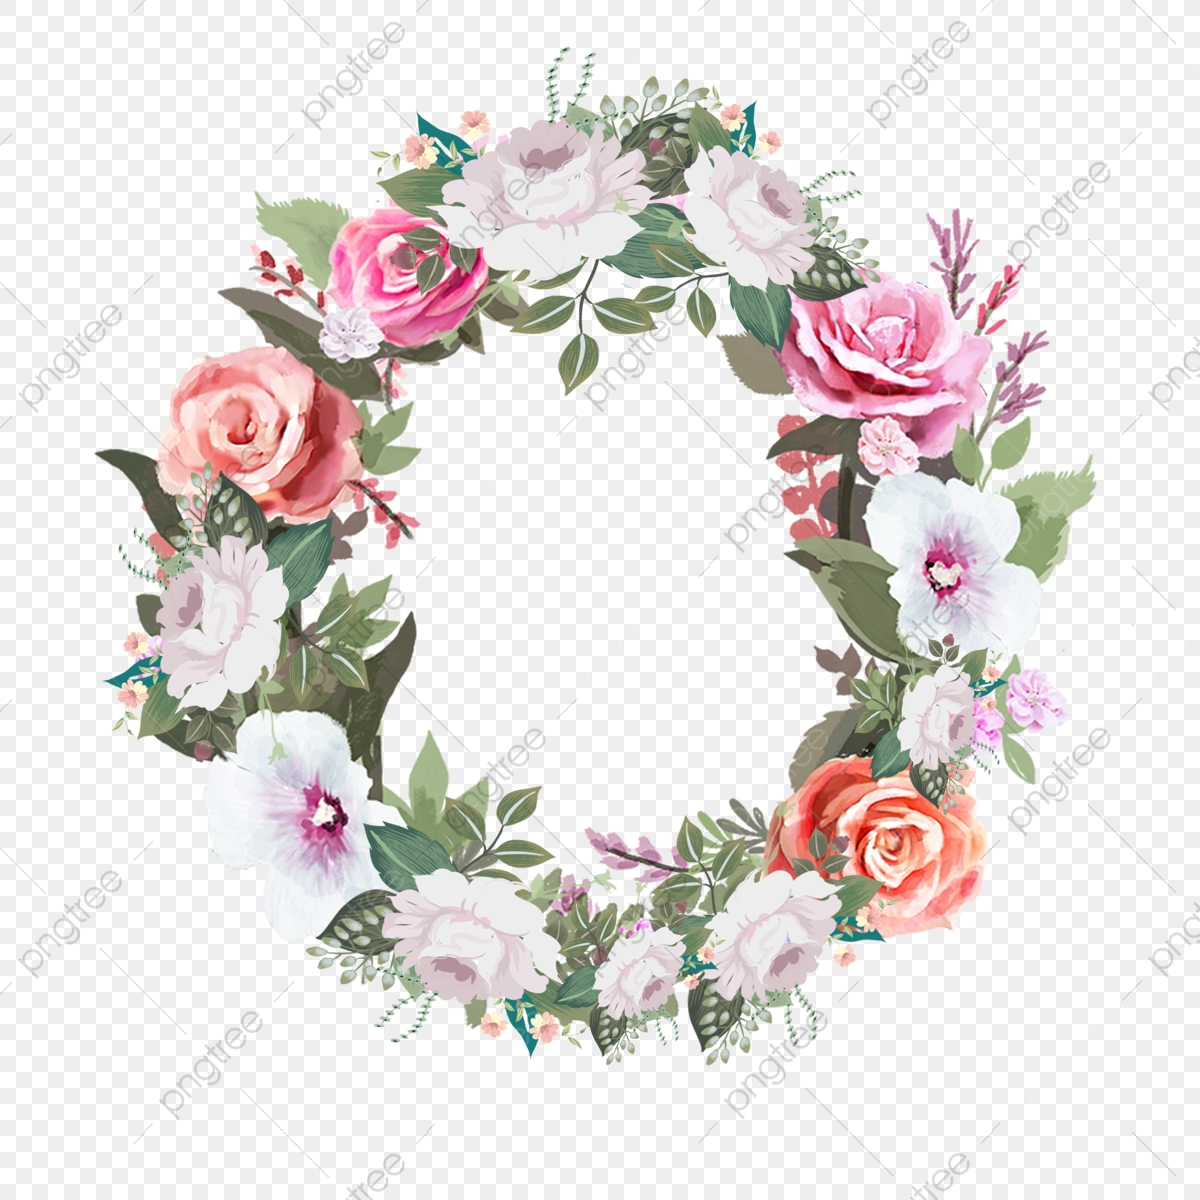 Watercolor Wedding Holiday Wreath Festival Wedding Watercolor Png Transparent Clipart Image And Psd File For Free Download